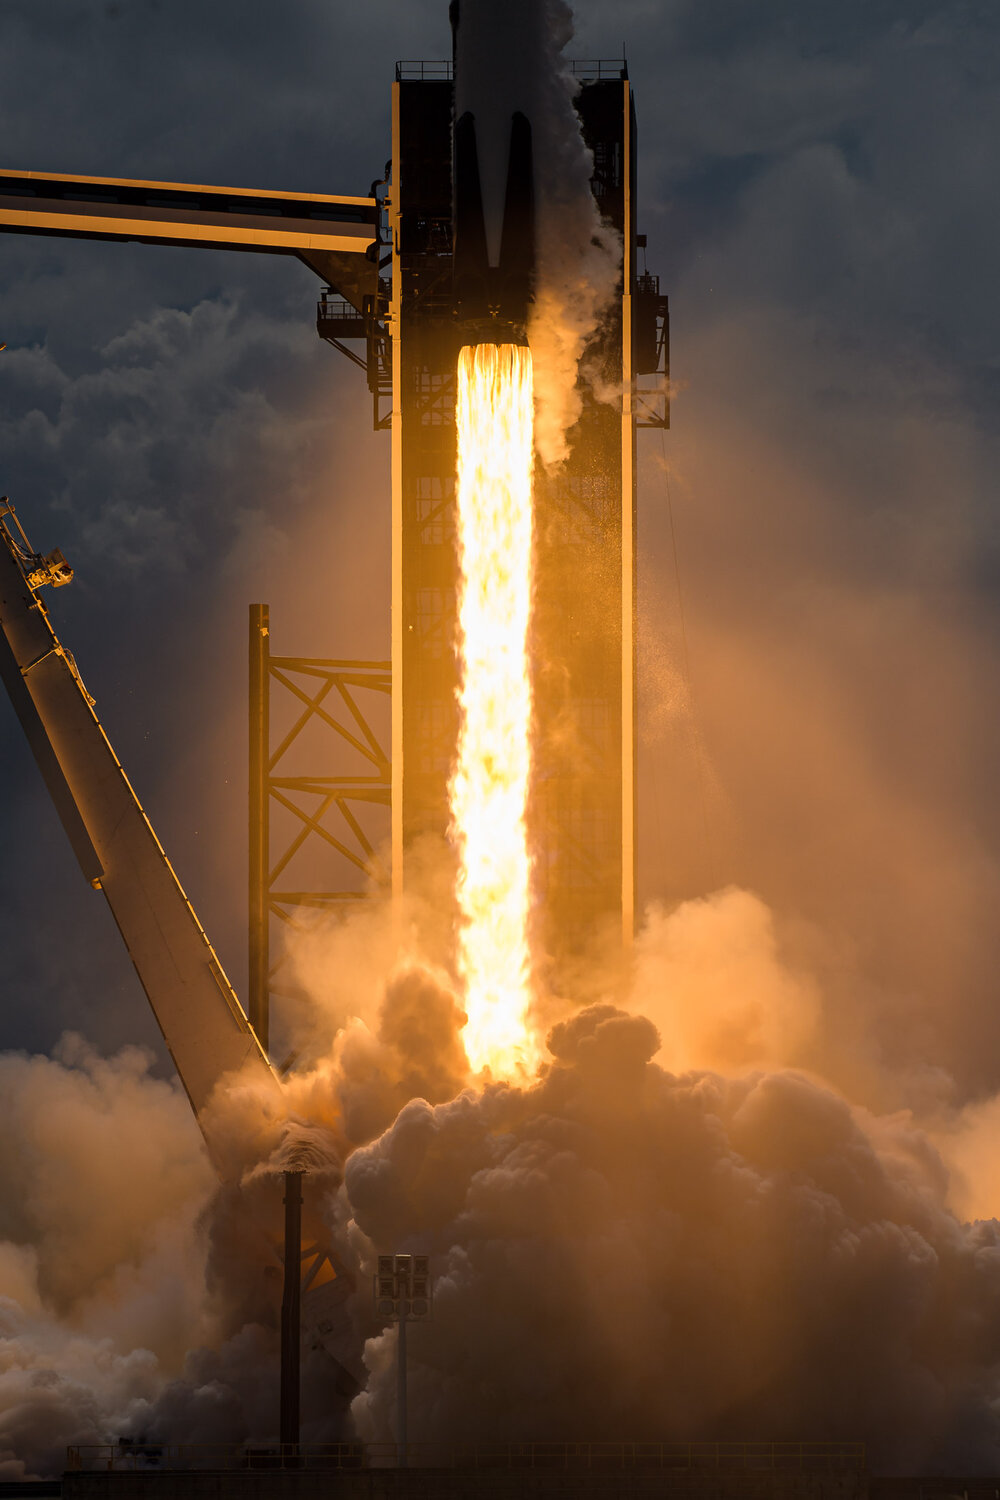 Nikon D5, 150mm, 1/4000 sec, f/9, ISO 100 – 1300 ft (395 m) from launch pad.